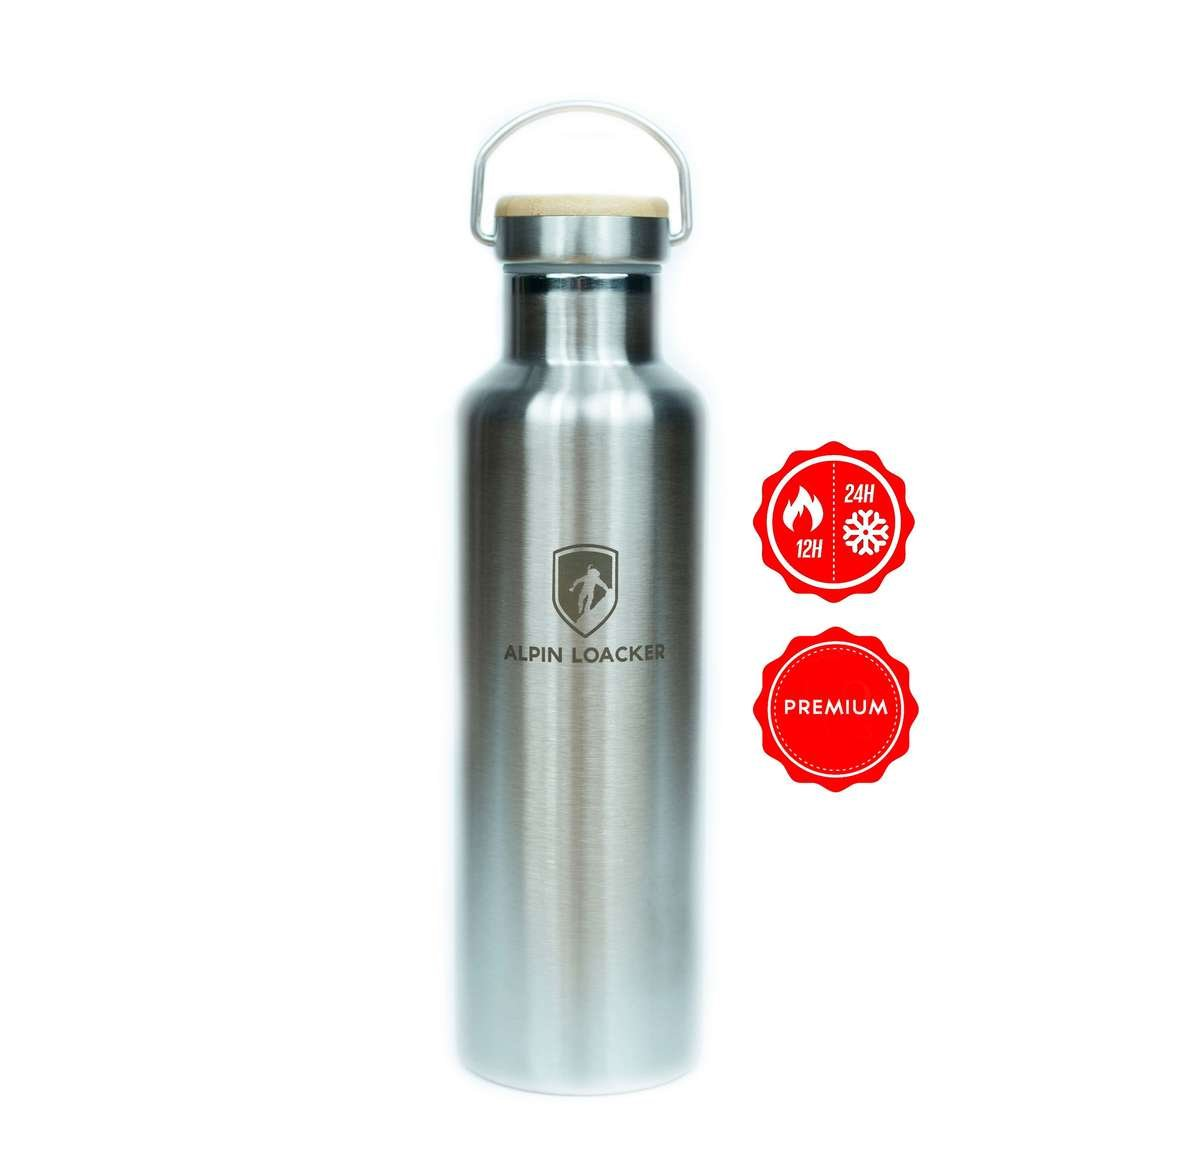 Hyperpage Edelstahl Thermosflasche